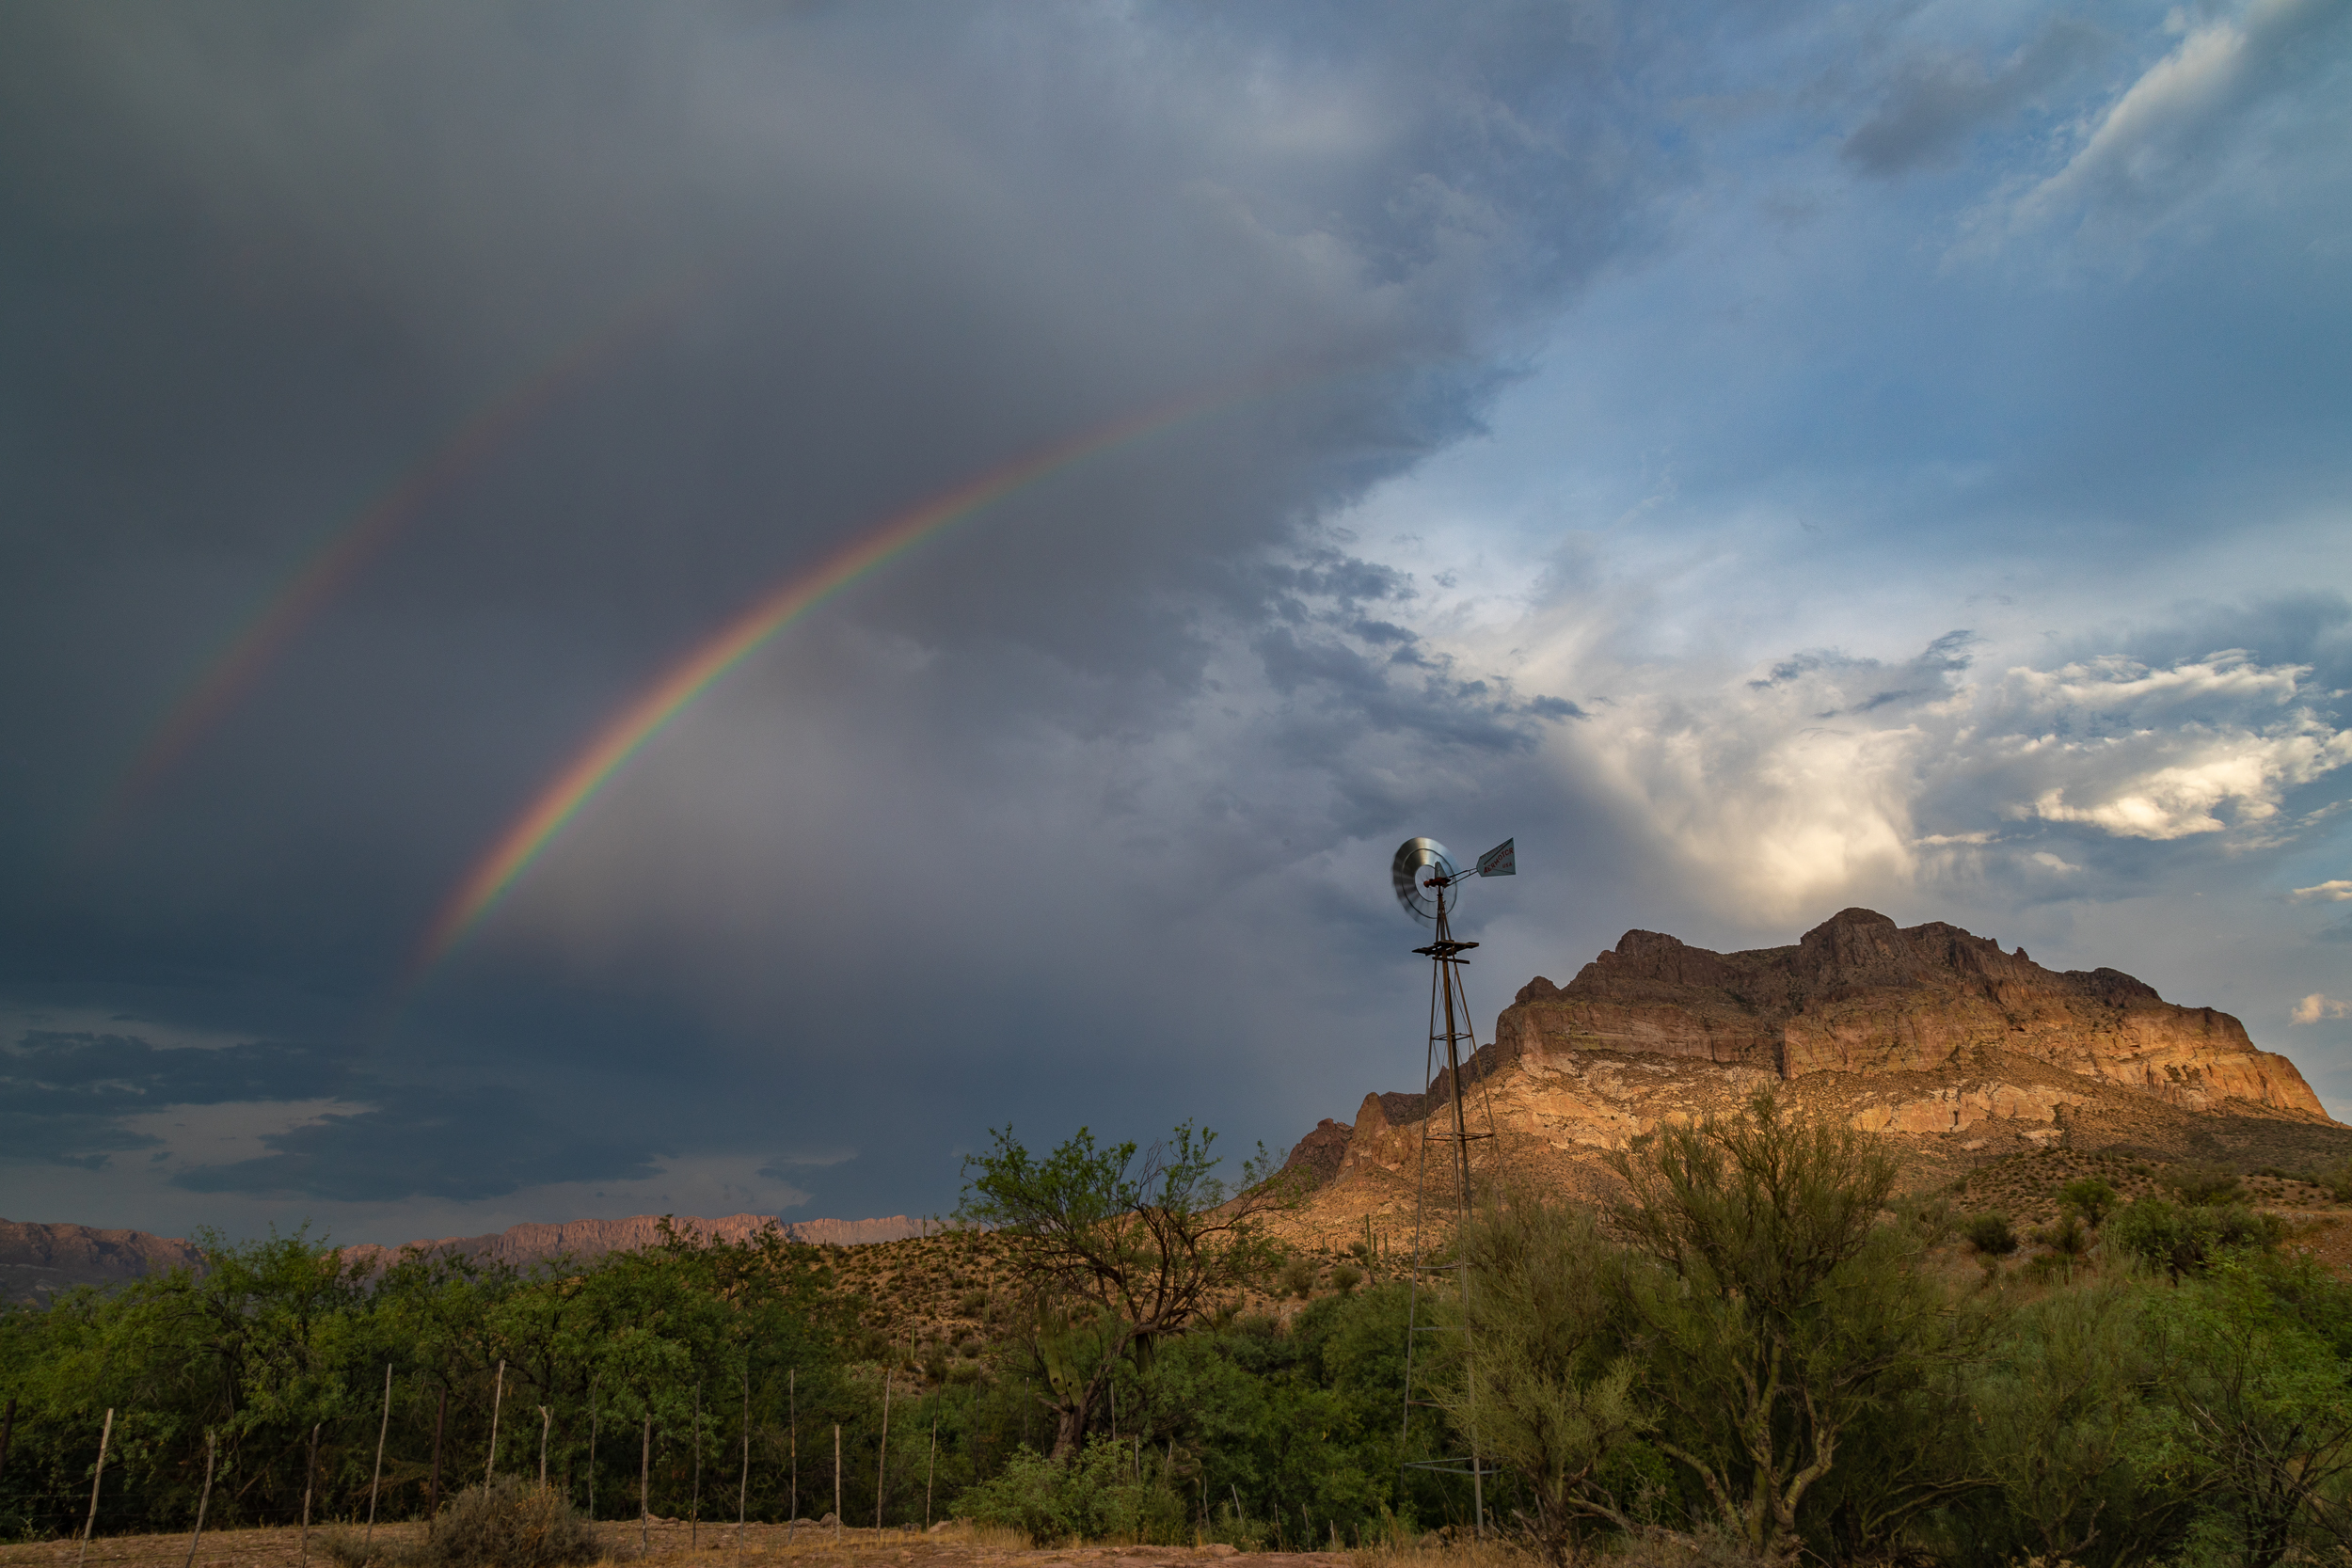 ArizonaStormChasing_20190723_0062-Edit.jpg